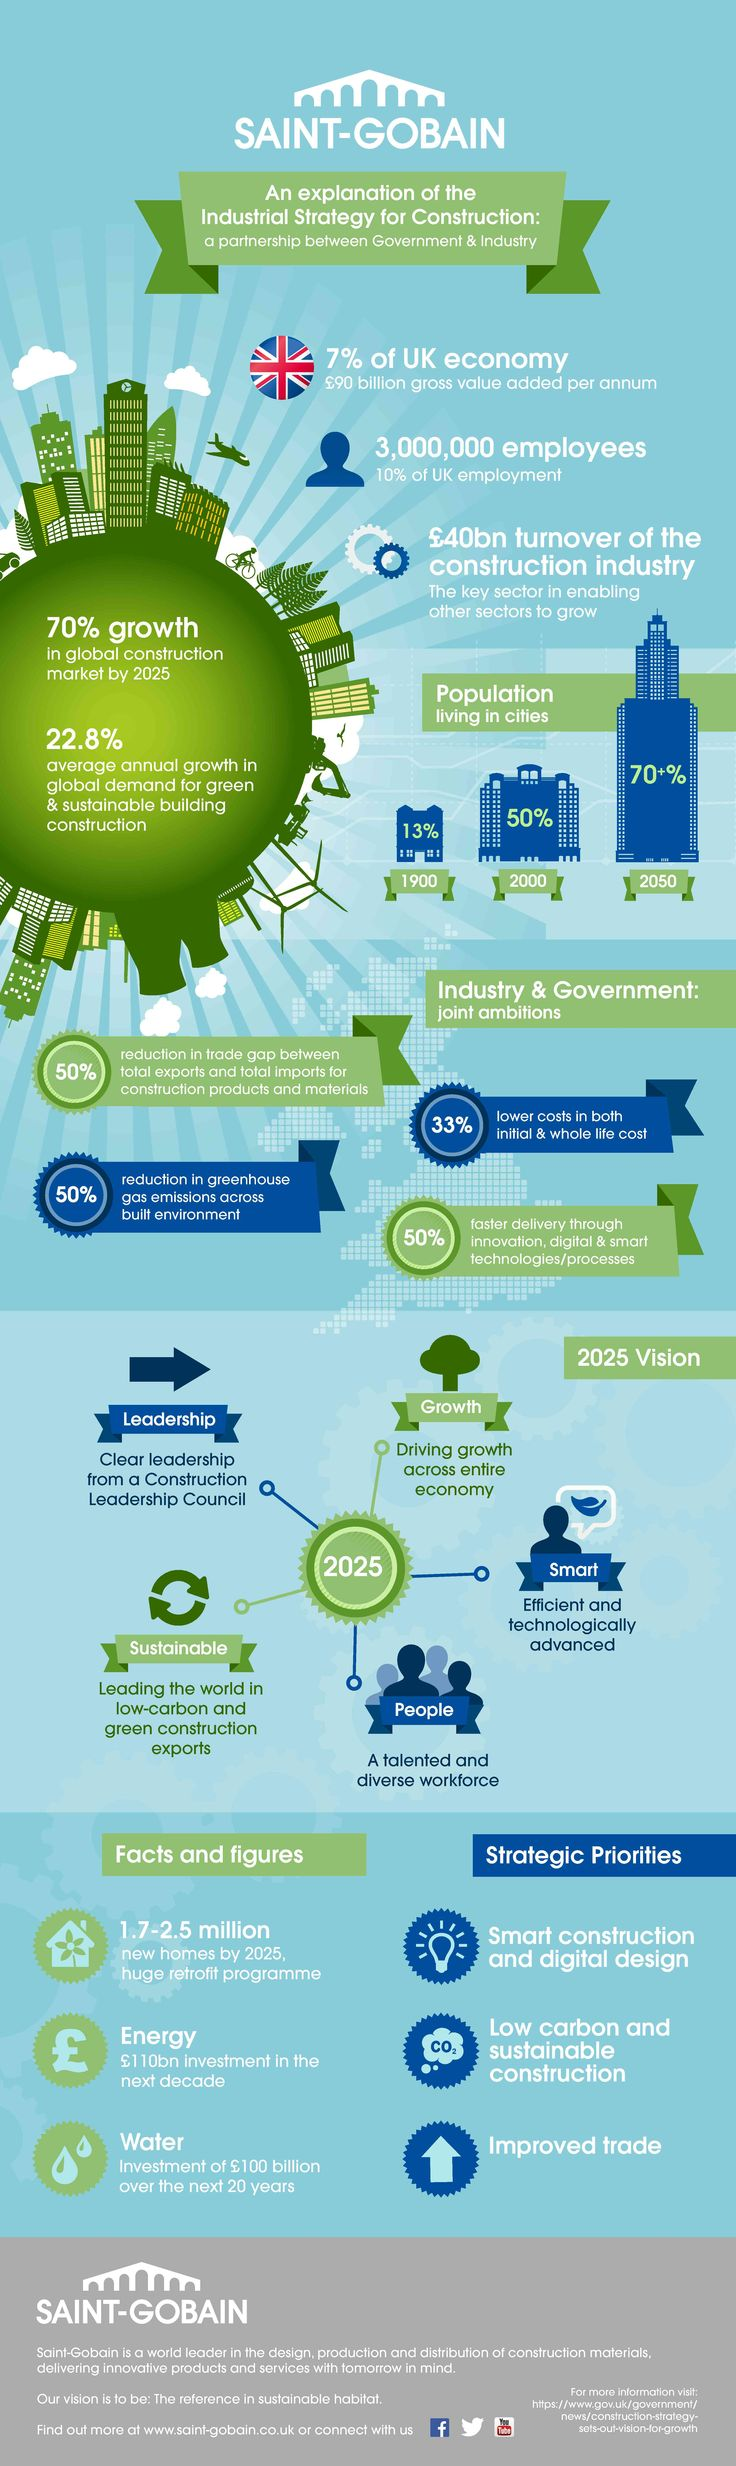 86 best construction industry trends images on pinterest info saint gobain infographic explaining the industrial strategy for construction fandeluxe Choice Image